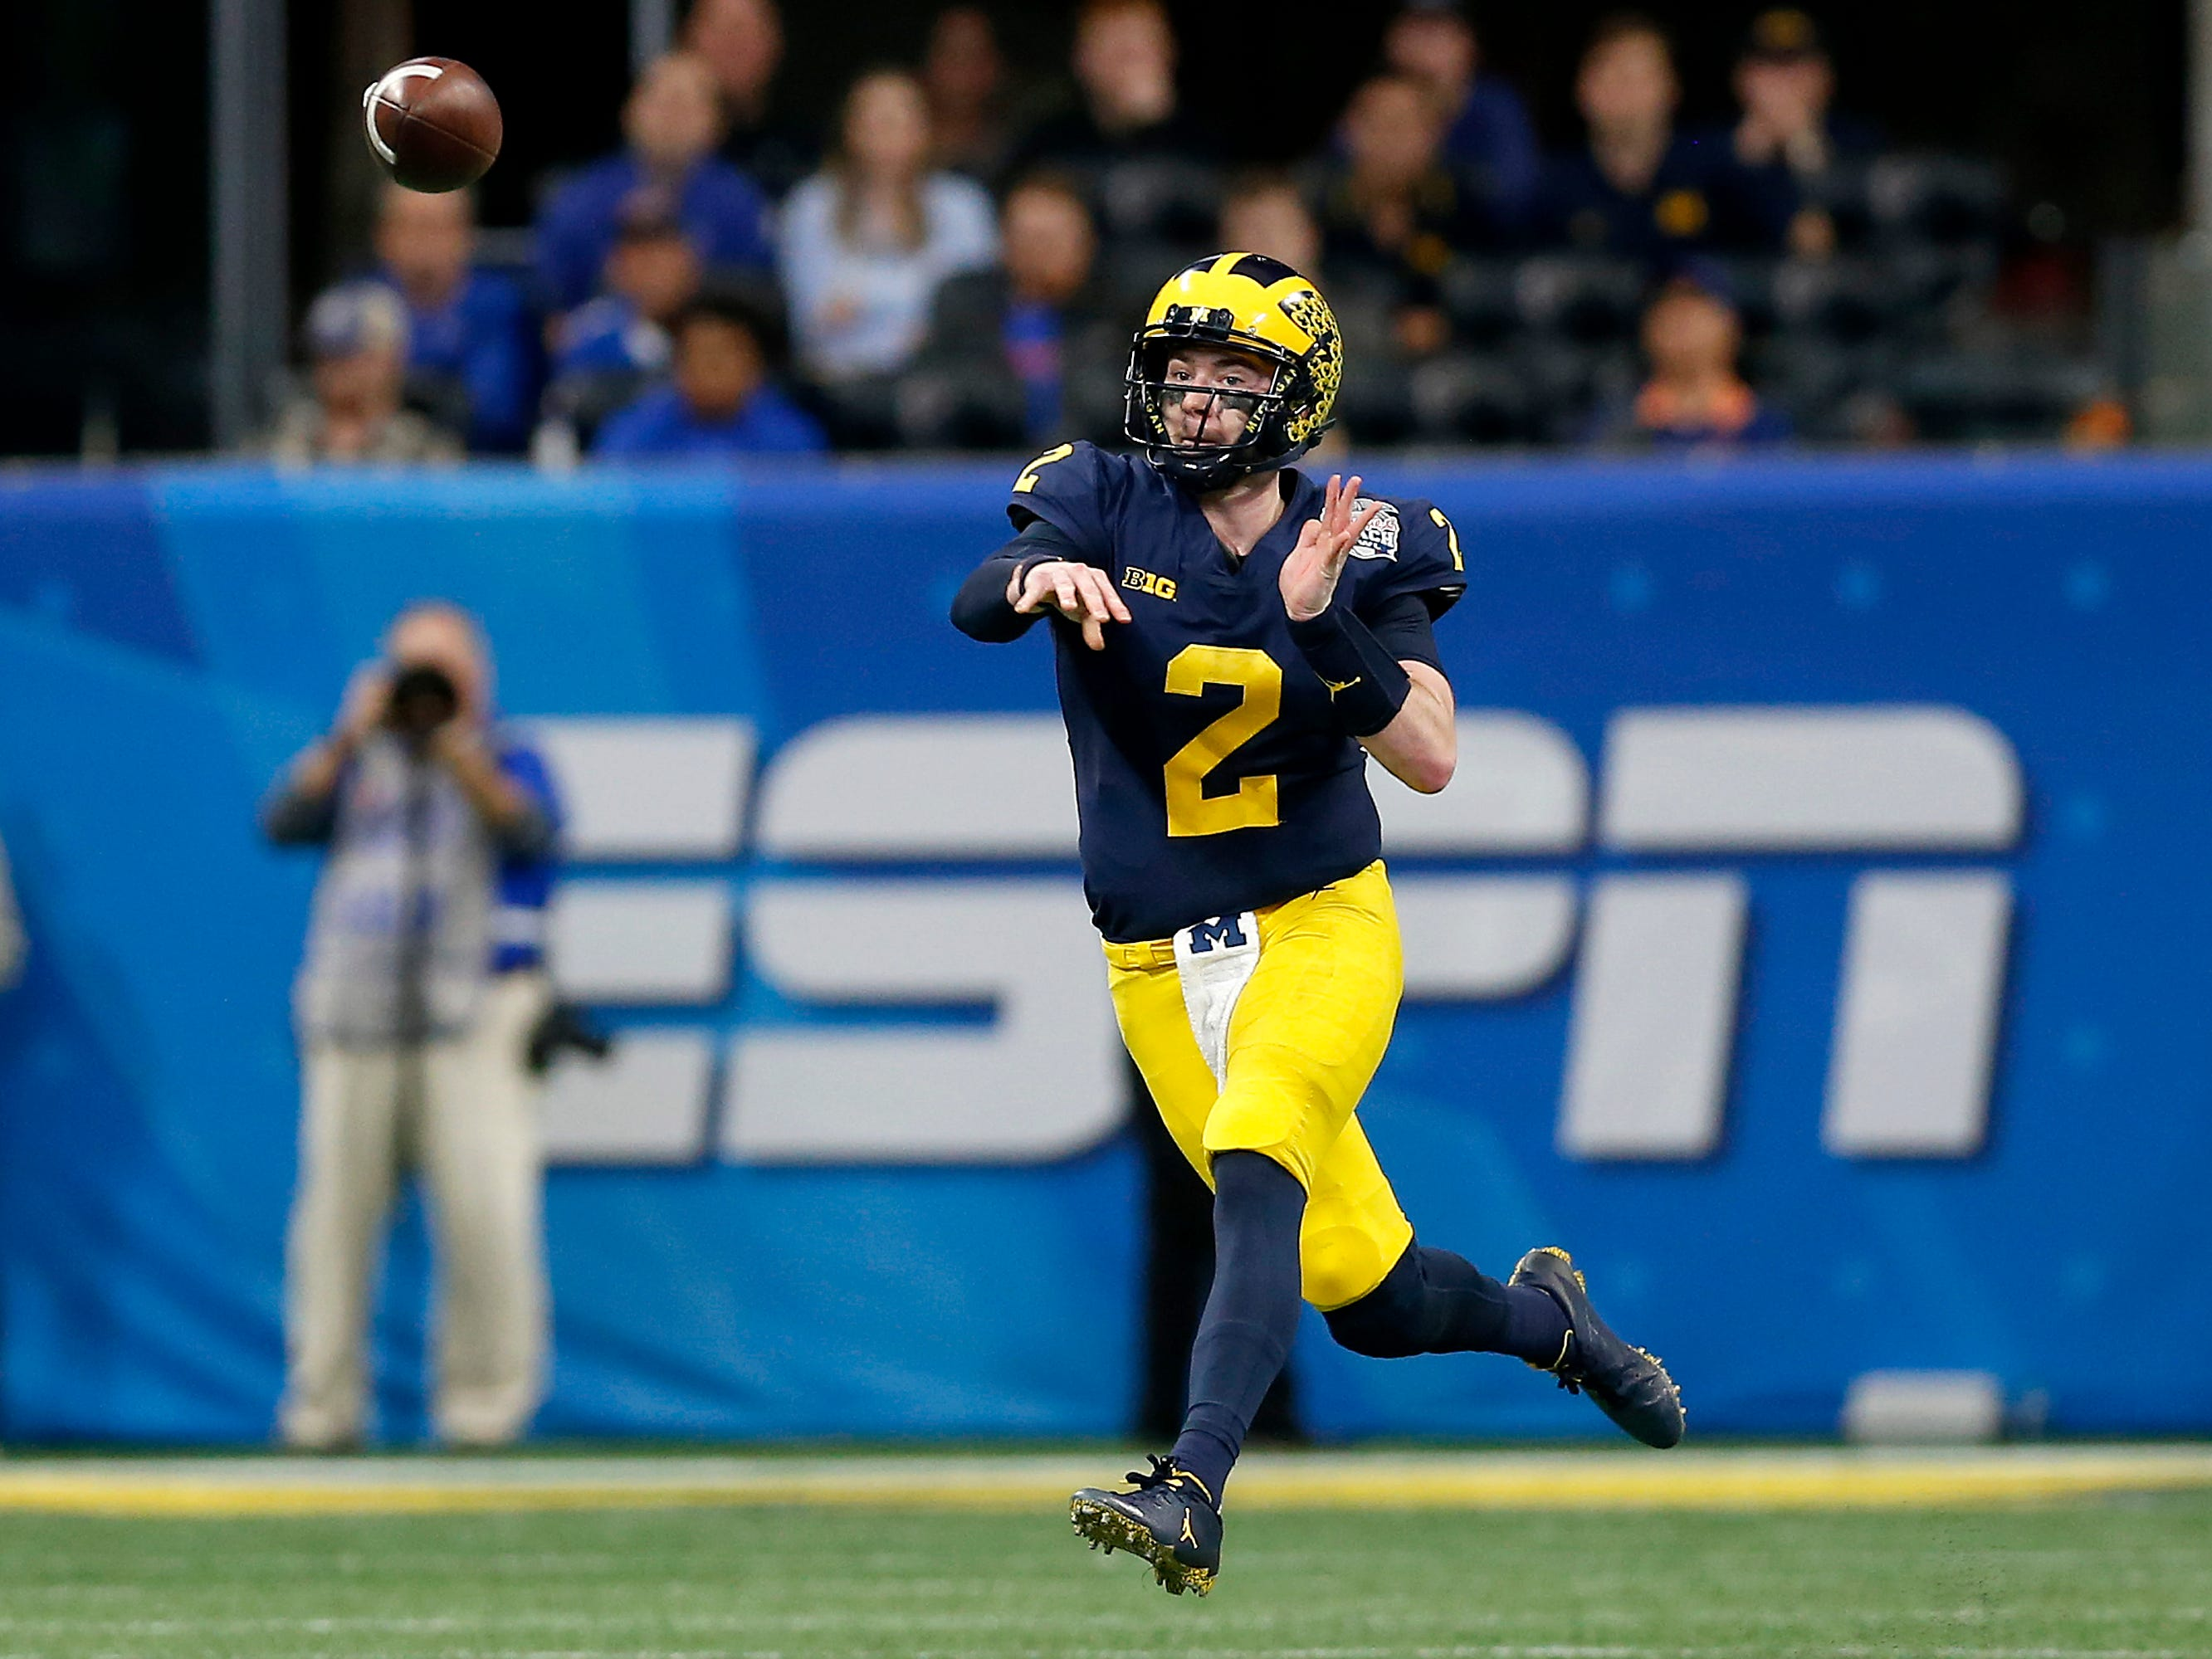 Michigan quarterback Shea Patterson attempts a pass in the first quarter during the Peach Bowl on Saturday, Dec. 29, 2018 in Atlanta.